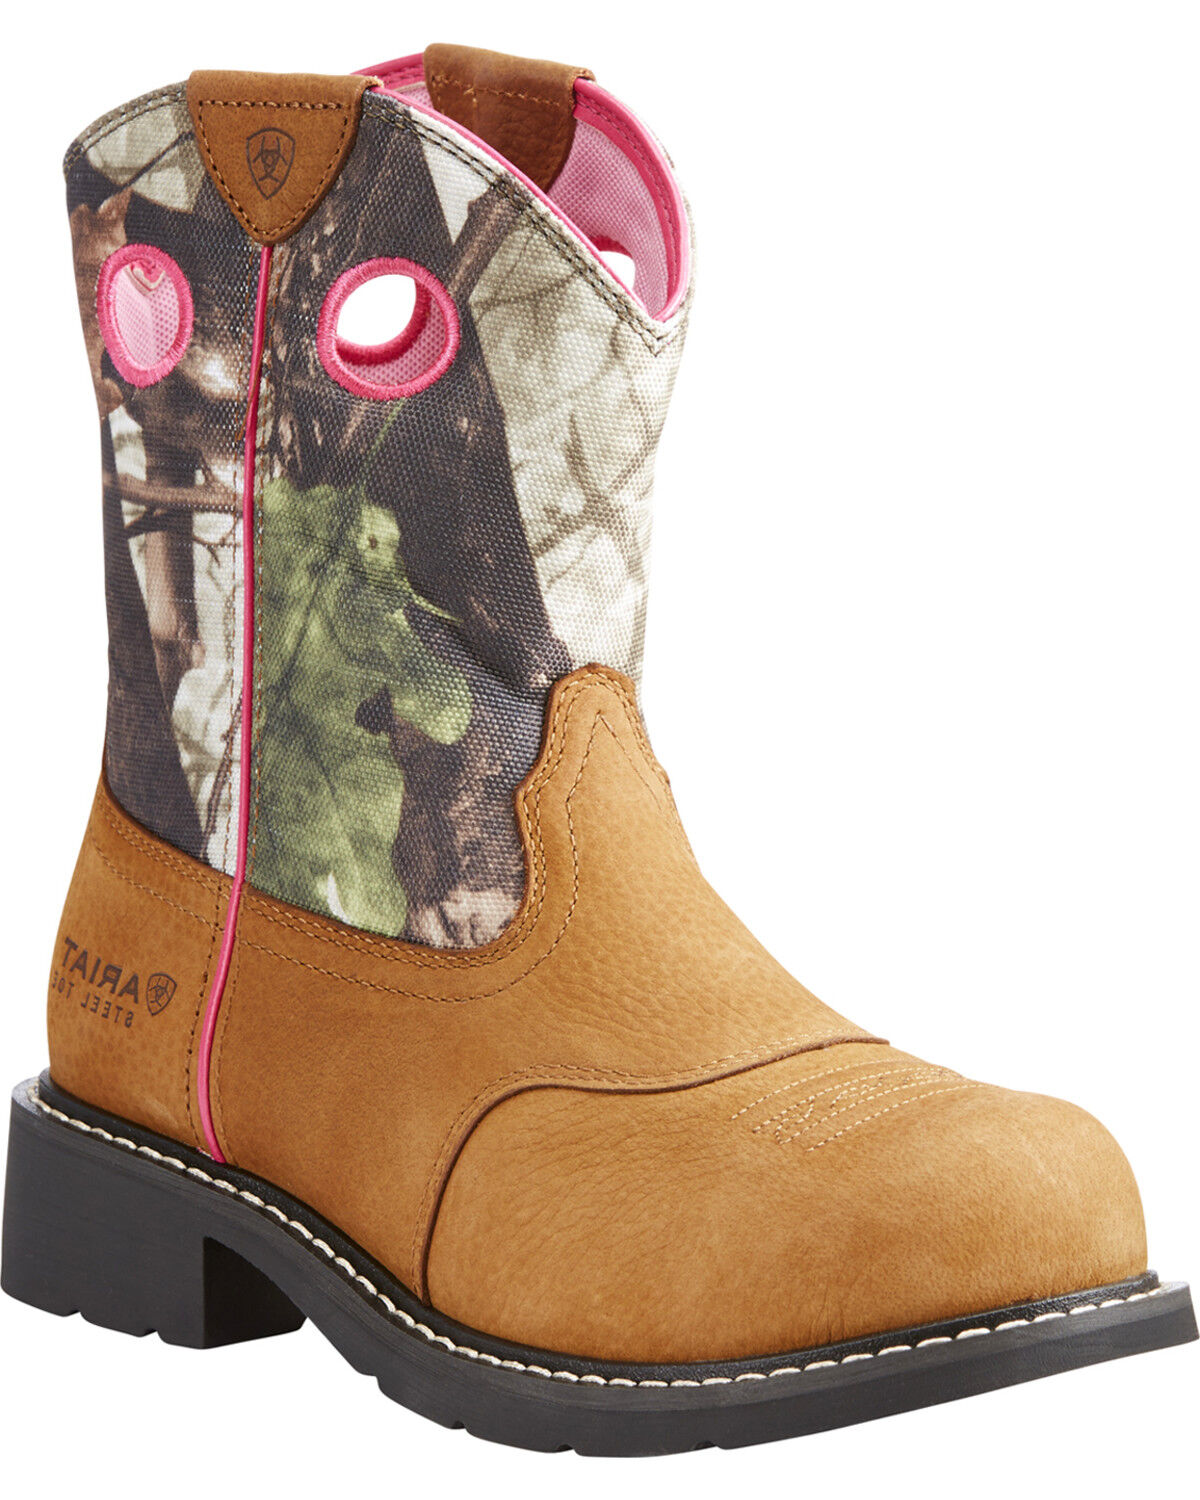 To acquire Womens Ariat steel toe boots picture trends